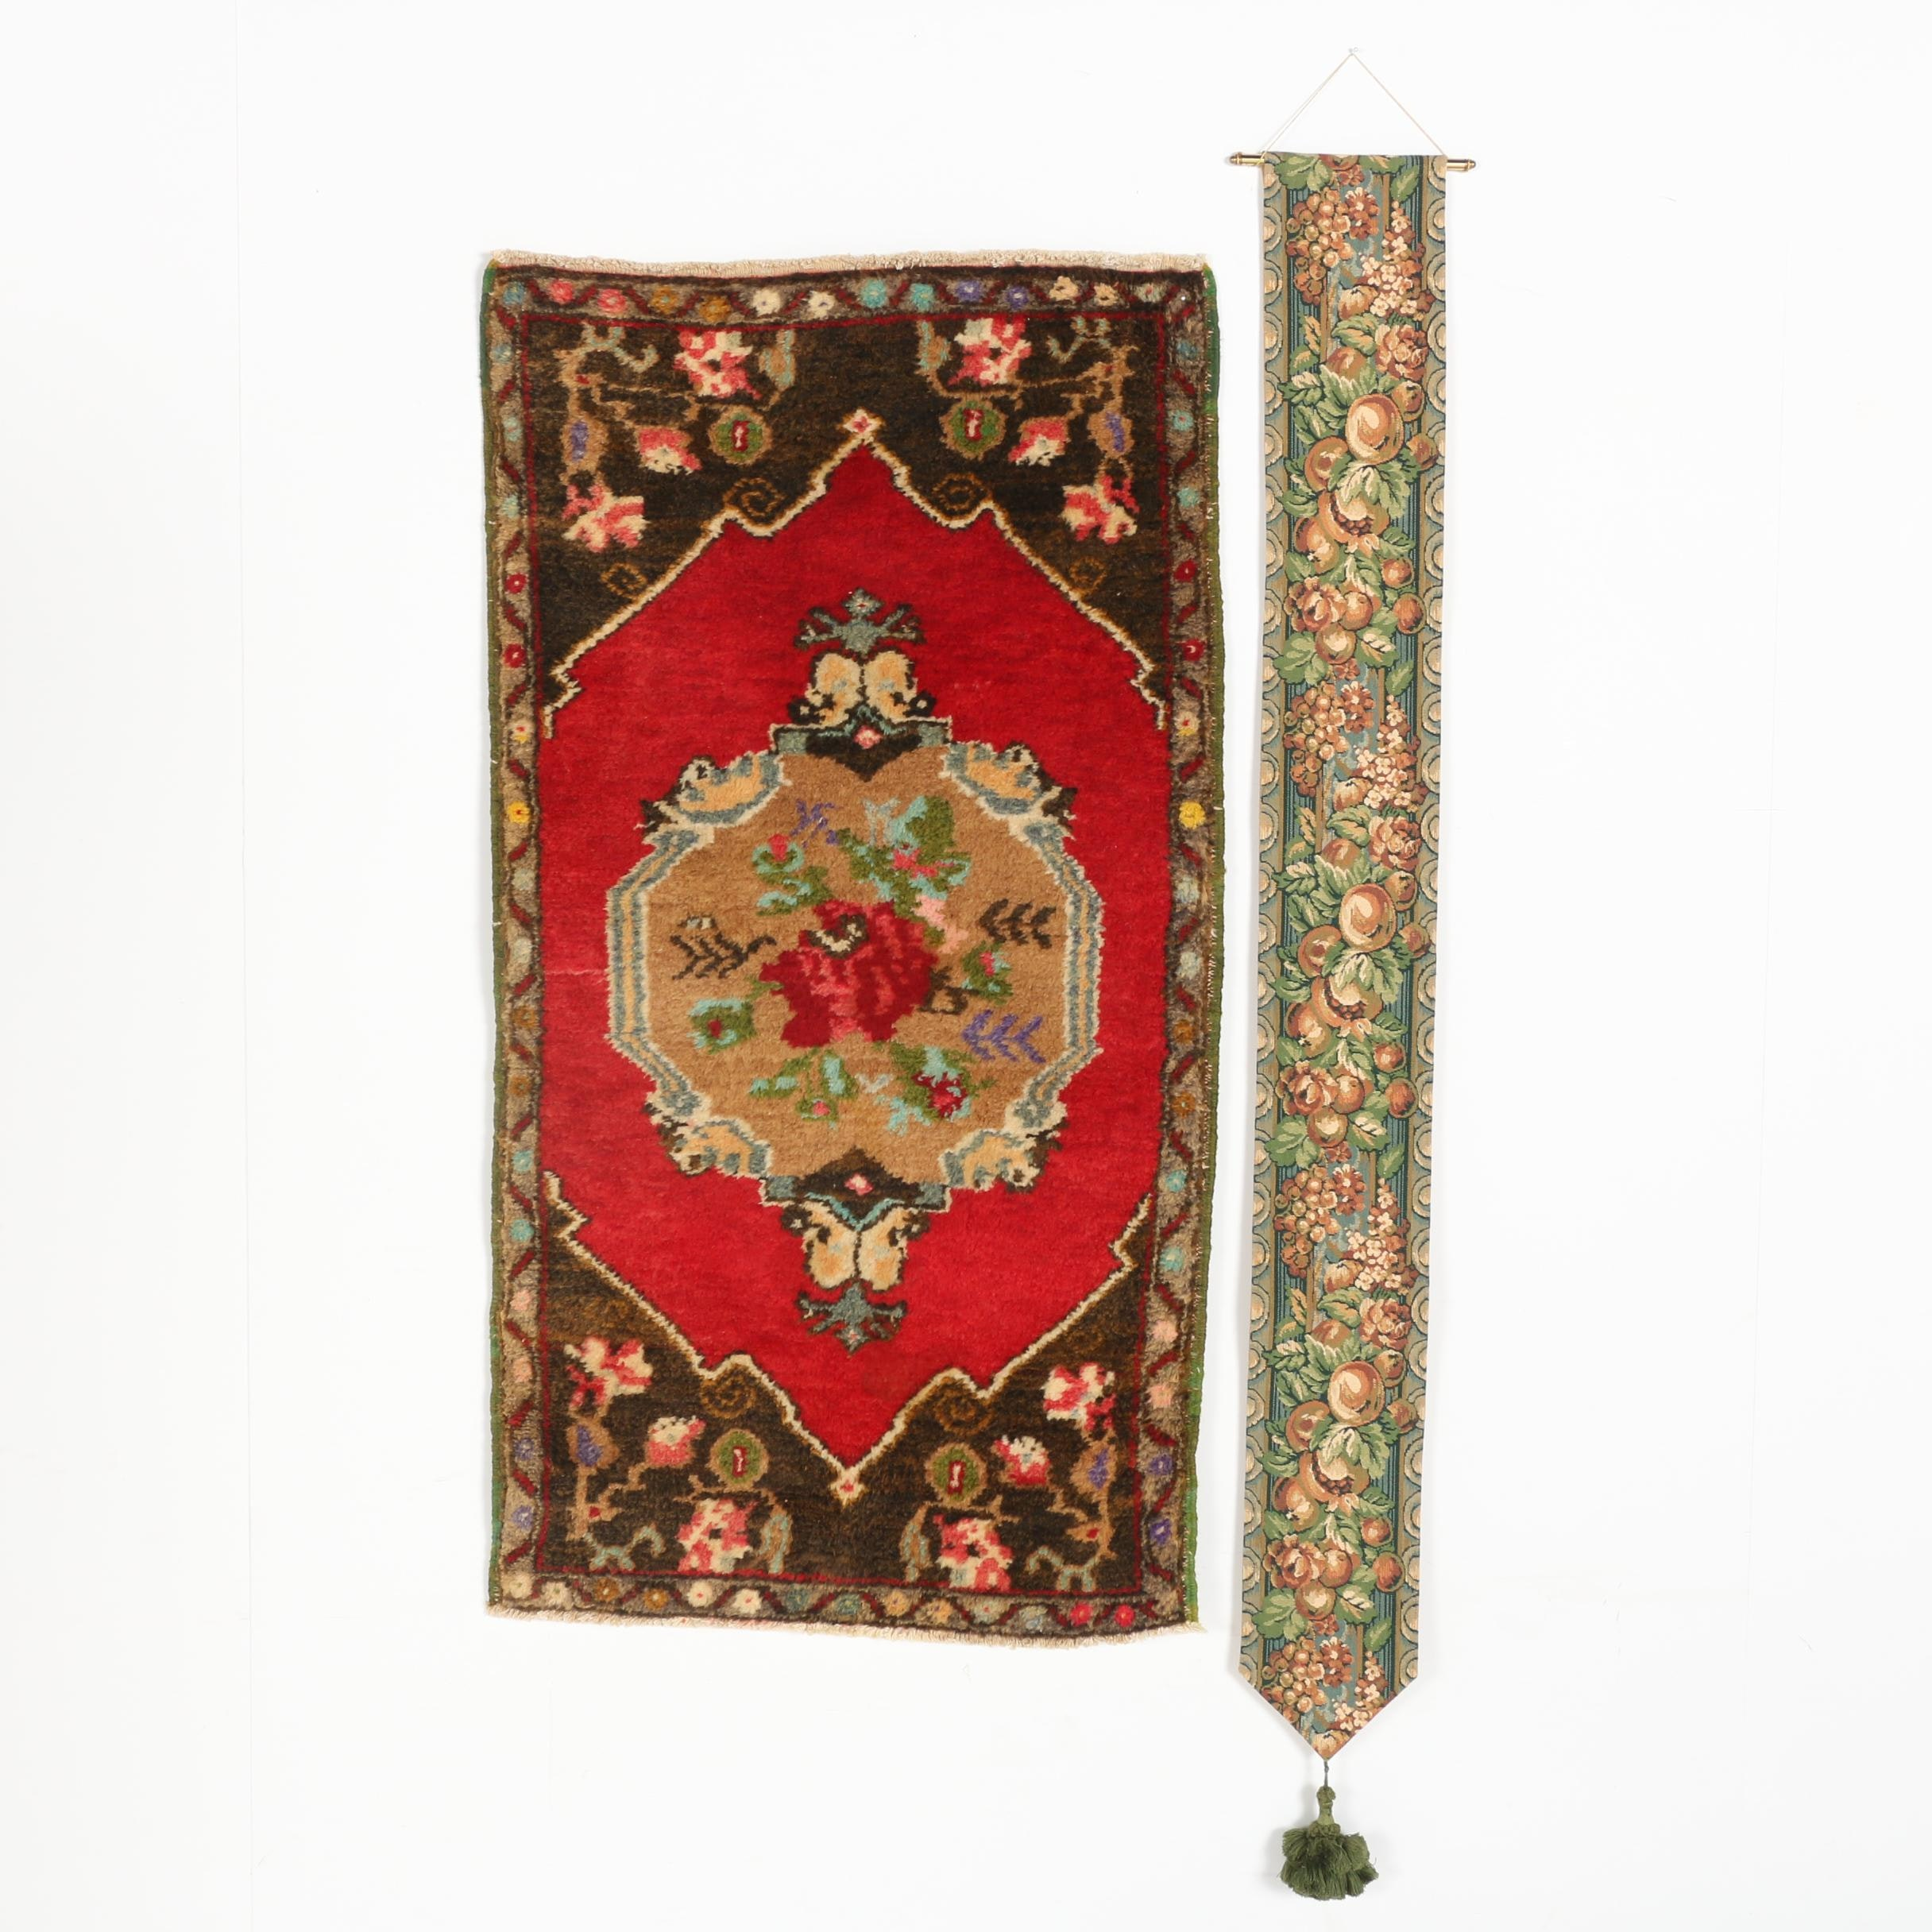 Hand-Knotted Persian Style Accent Rug and Tapestry